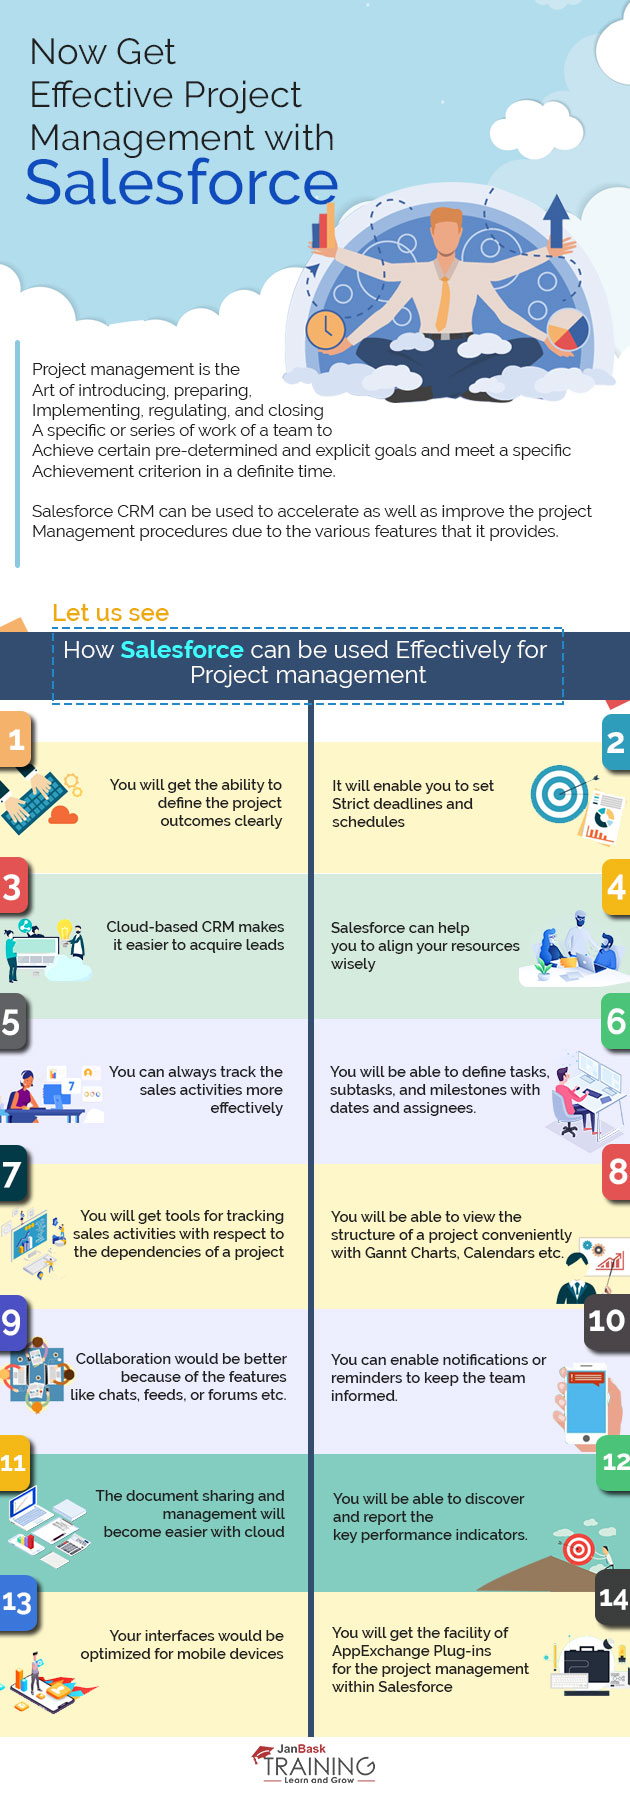 Now-Get-Effective-Project-Management-with-Salesforce-infographic